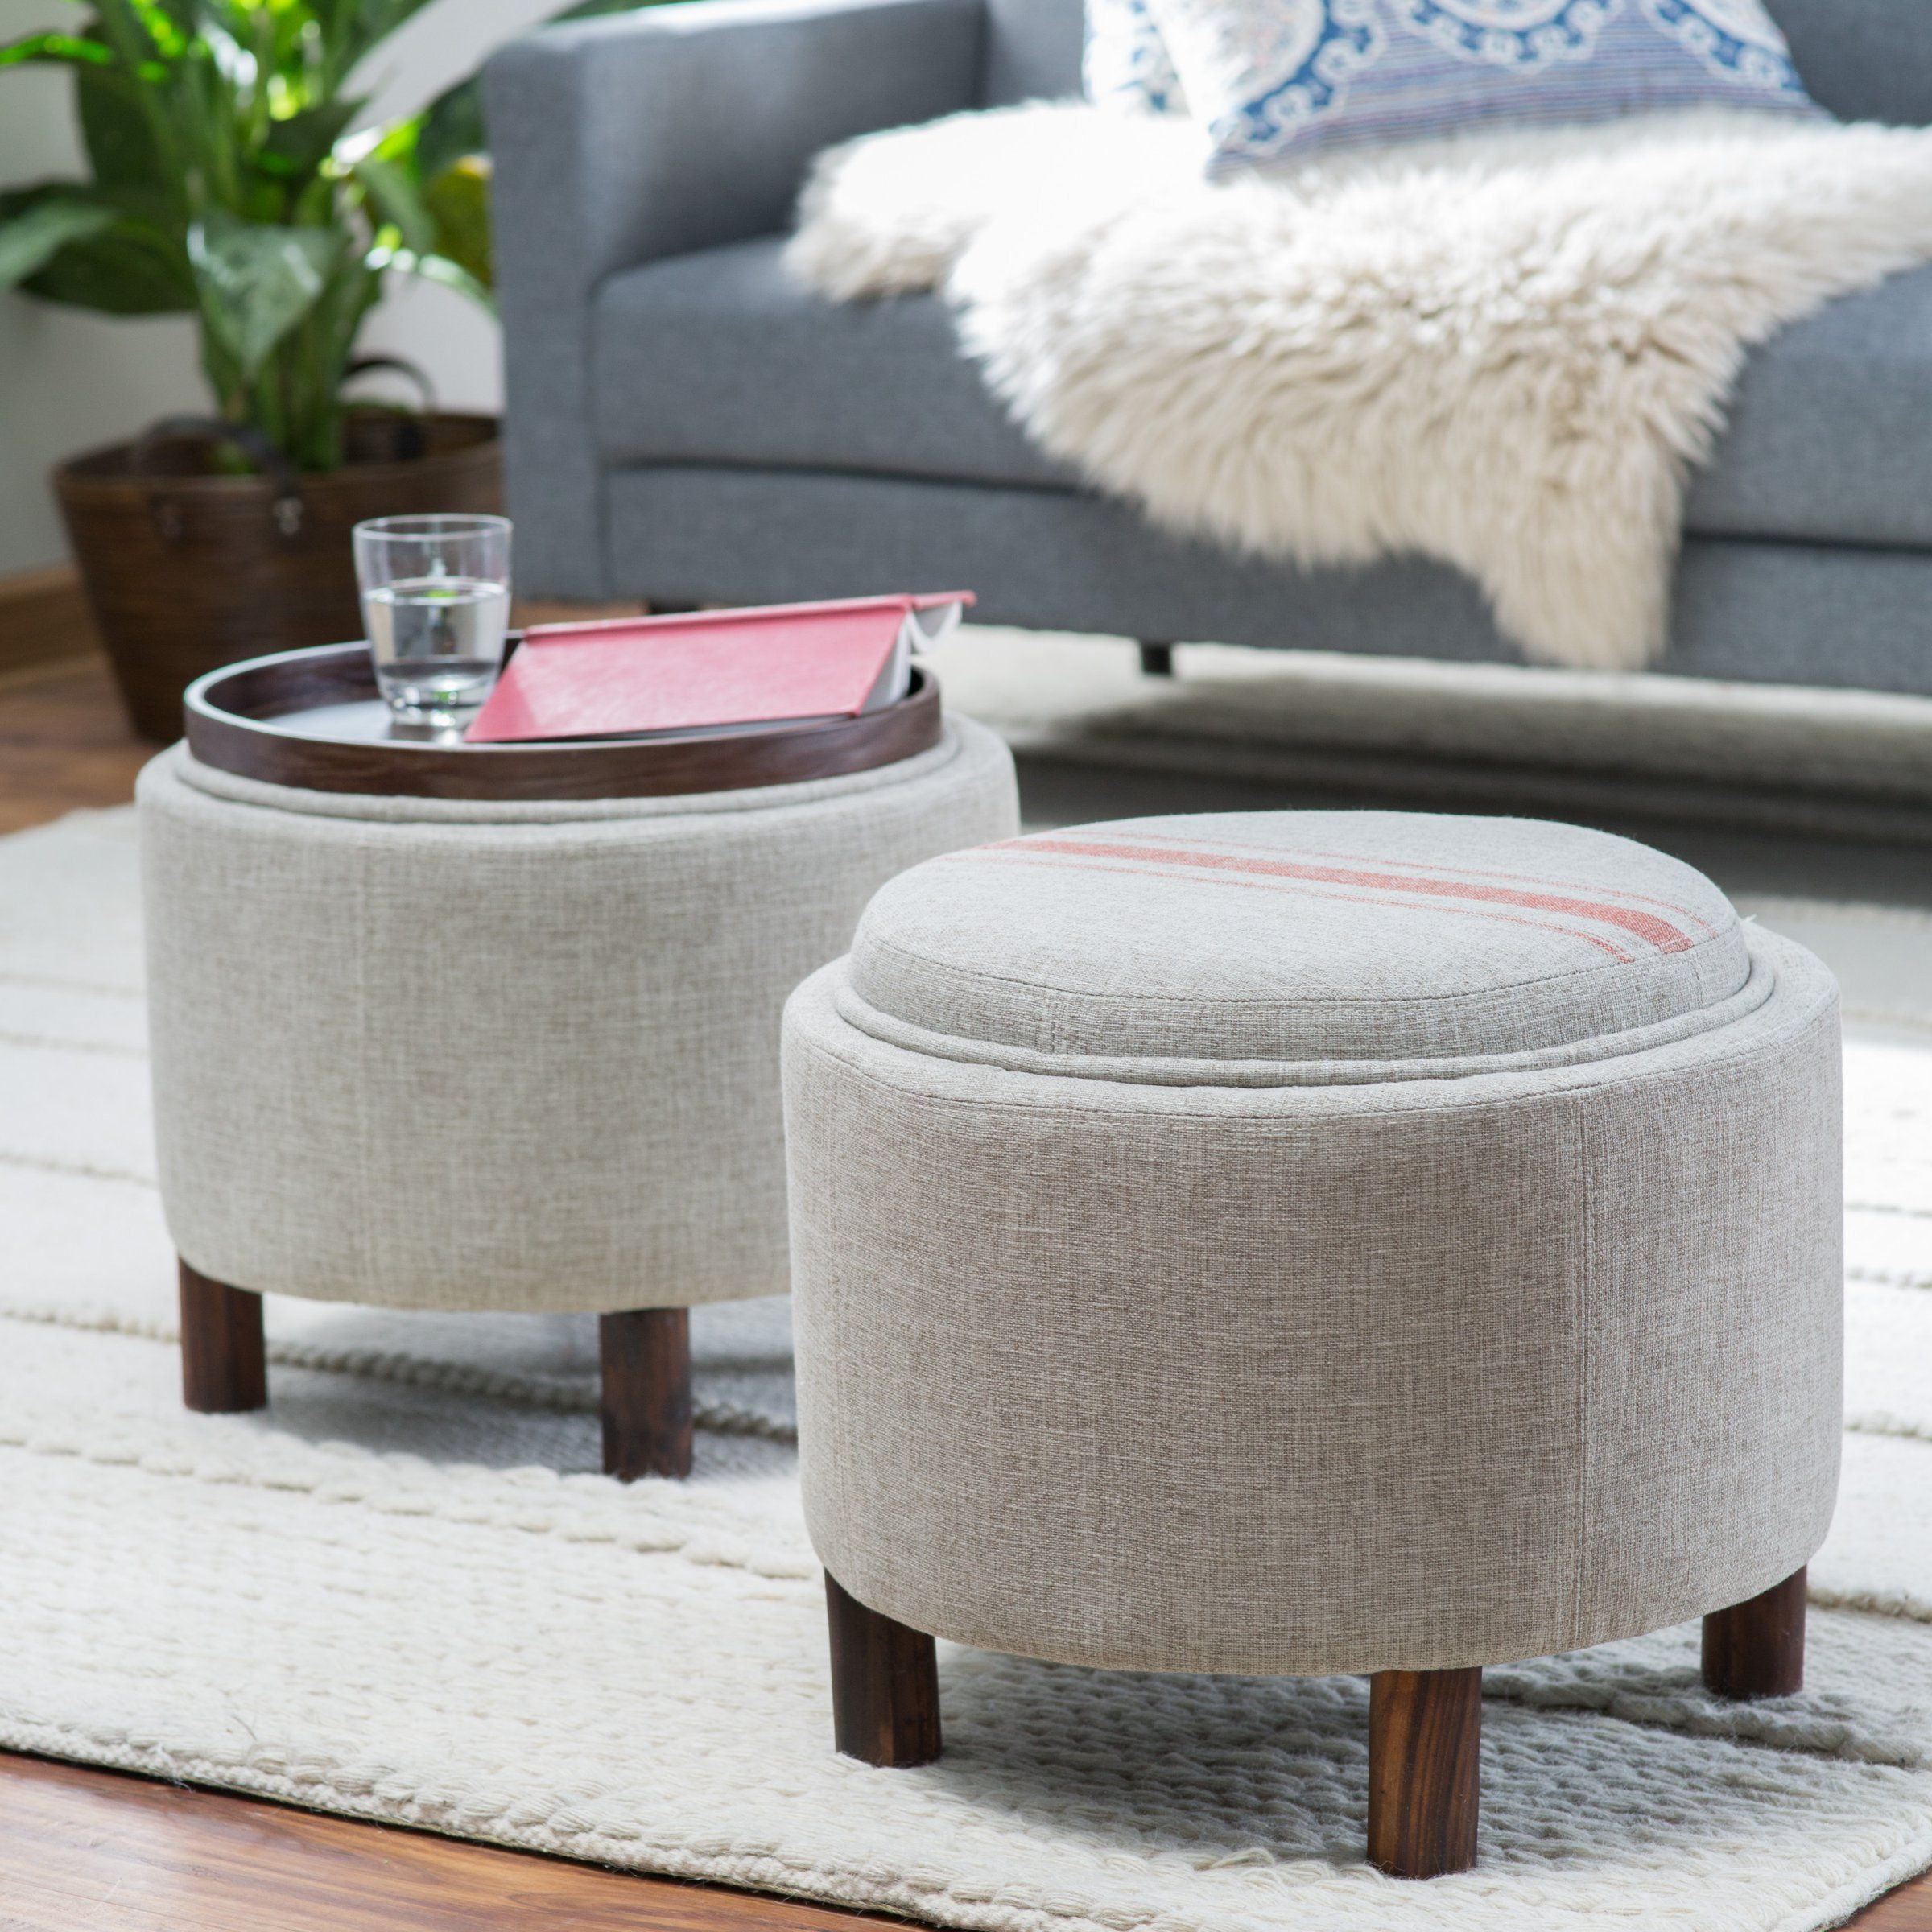 Charmant Belham Living Ingram Round Storage Ottoman With Cocktail Tray   Ottomans At  Hayneedle